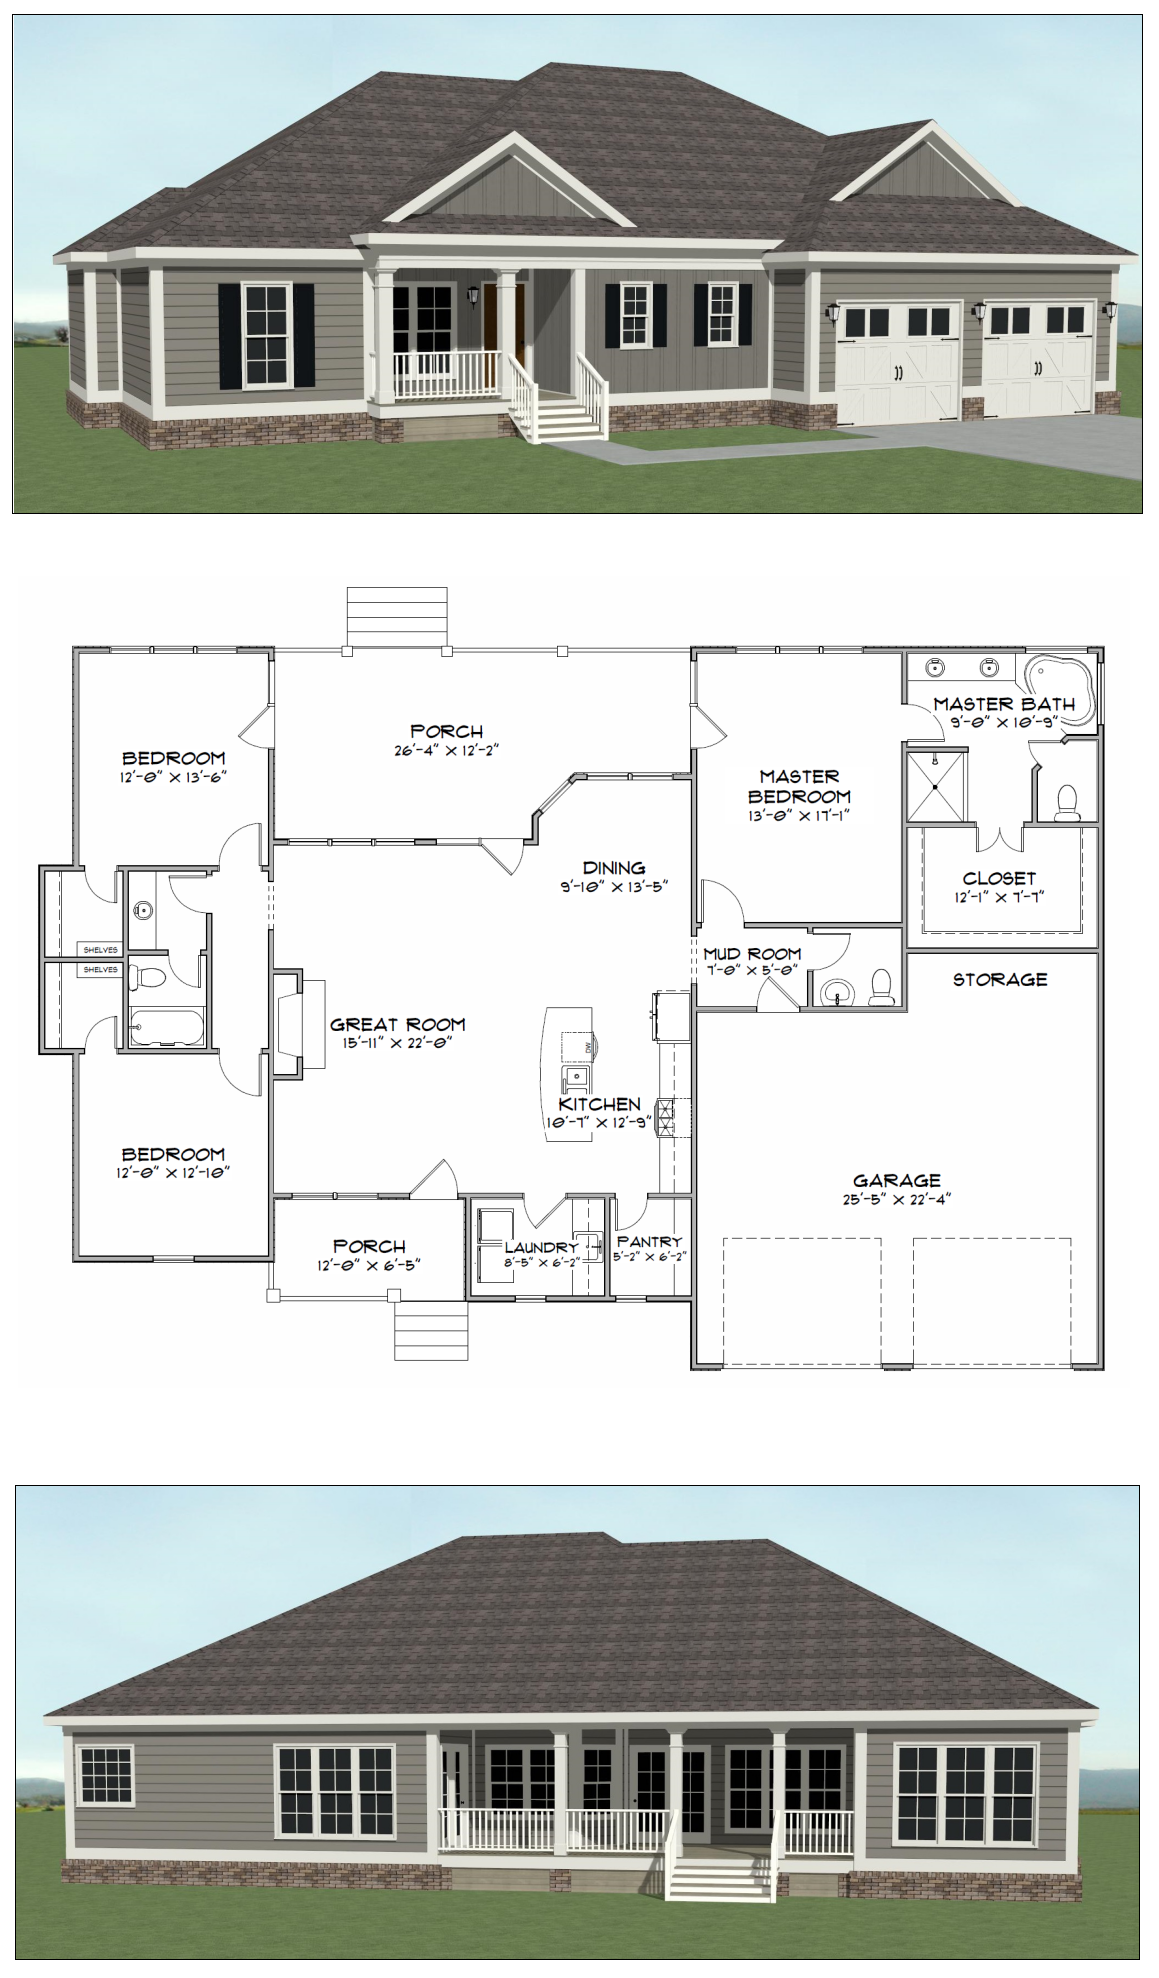 modify house plans online modify existing house plans download plan sc1810 630 3 bedroom 2 5 bath home with 1810 heated modify house modify house plans online